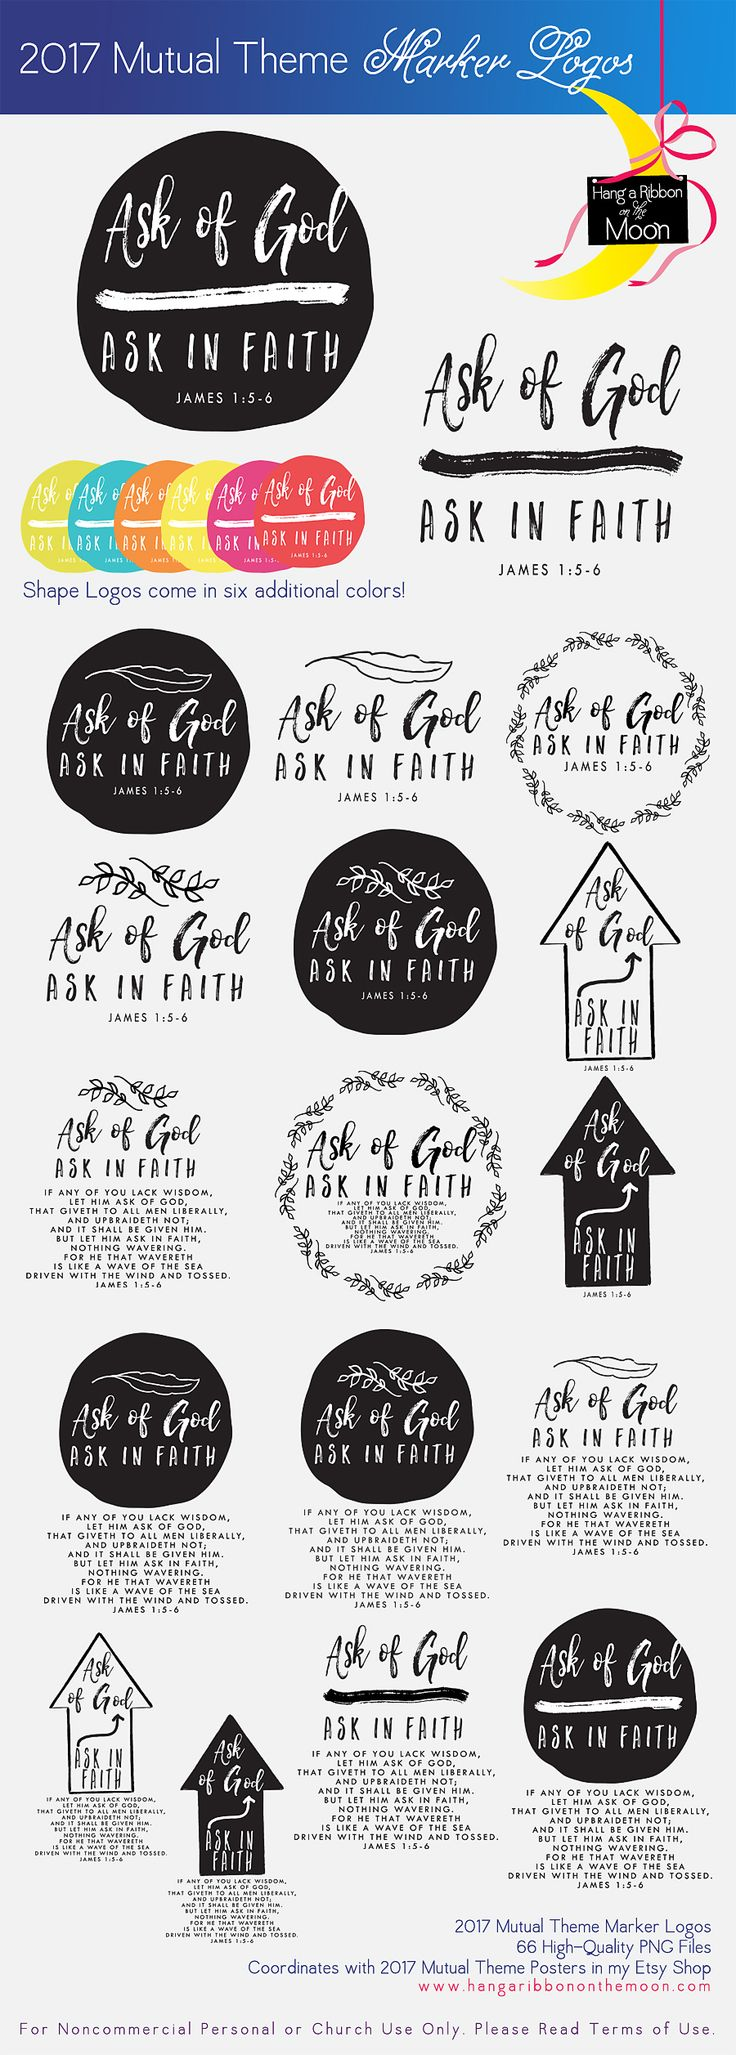 Gmail marker theme - 2017 Mutual Theme Marker Collection Free Logos Use For Youth Conference Girls Camp